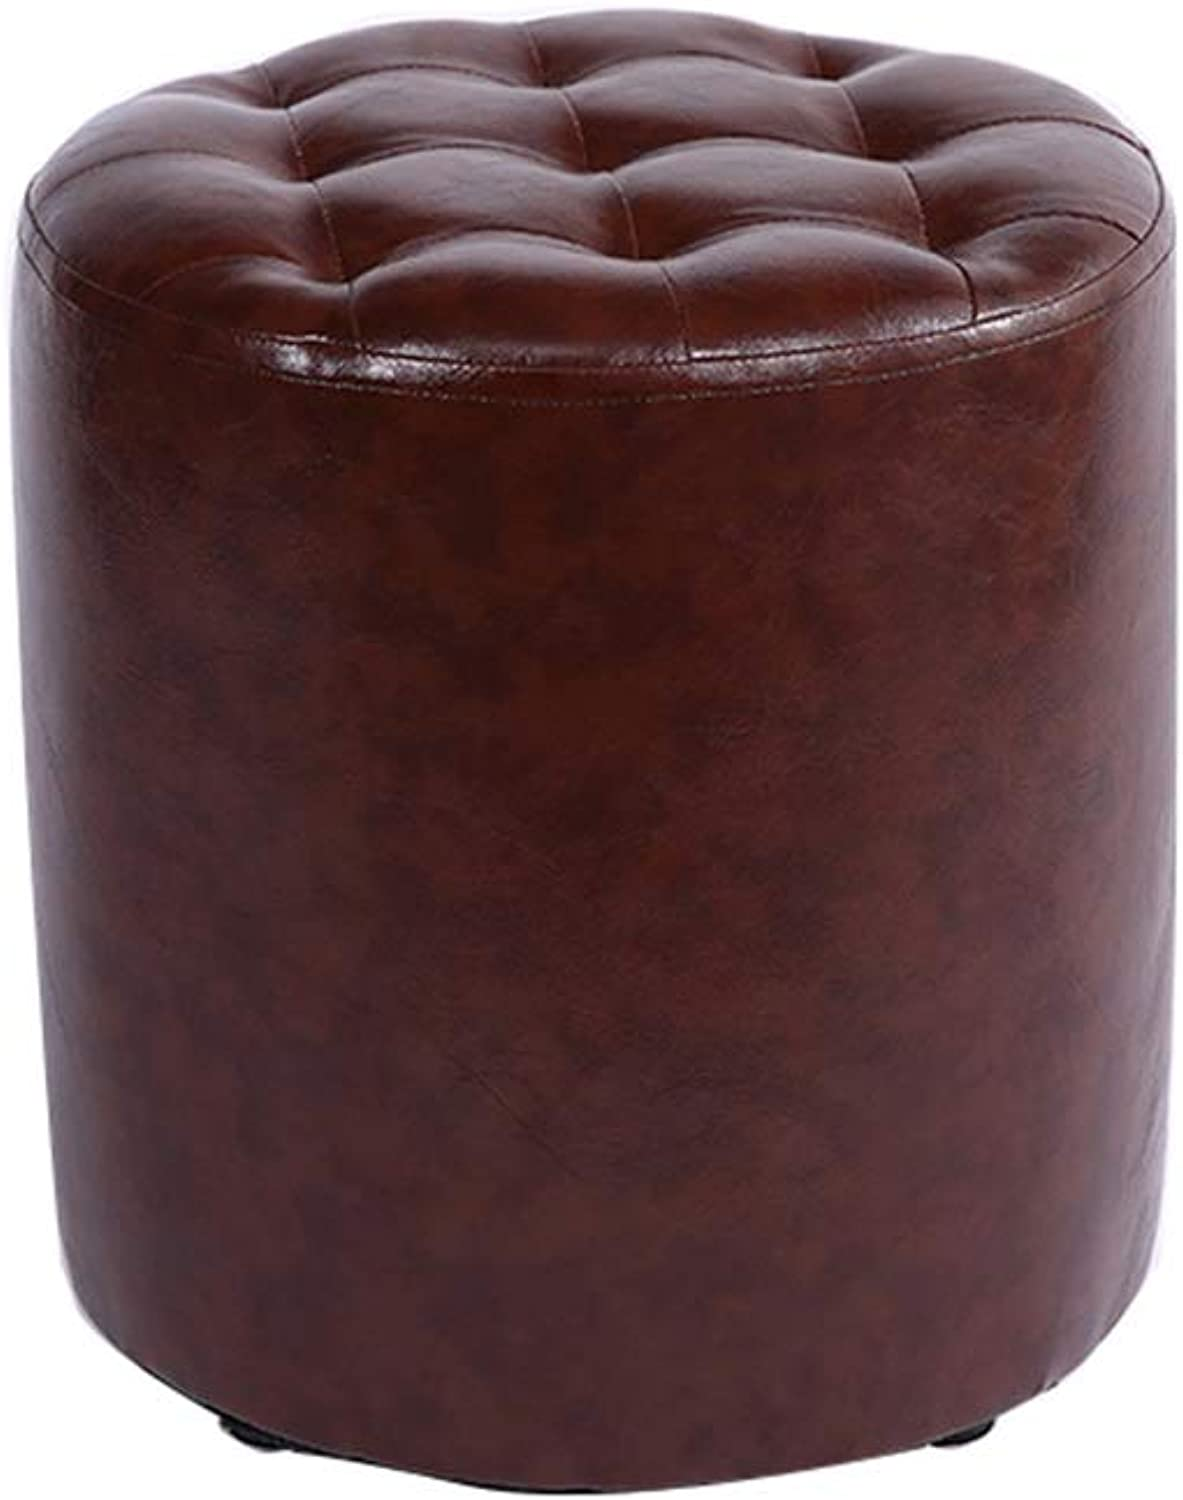 Small Round Stool Footstool Waterproof Pu Leather Stool Upholstered Pouffe Low Stool for Kids & Adults 100kg Weight Capacity Load(30×35cm) Brown